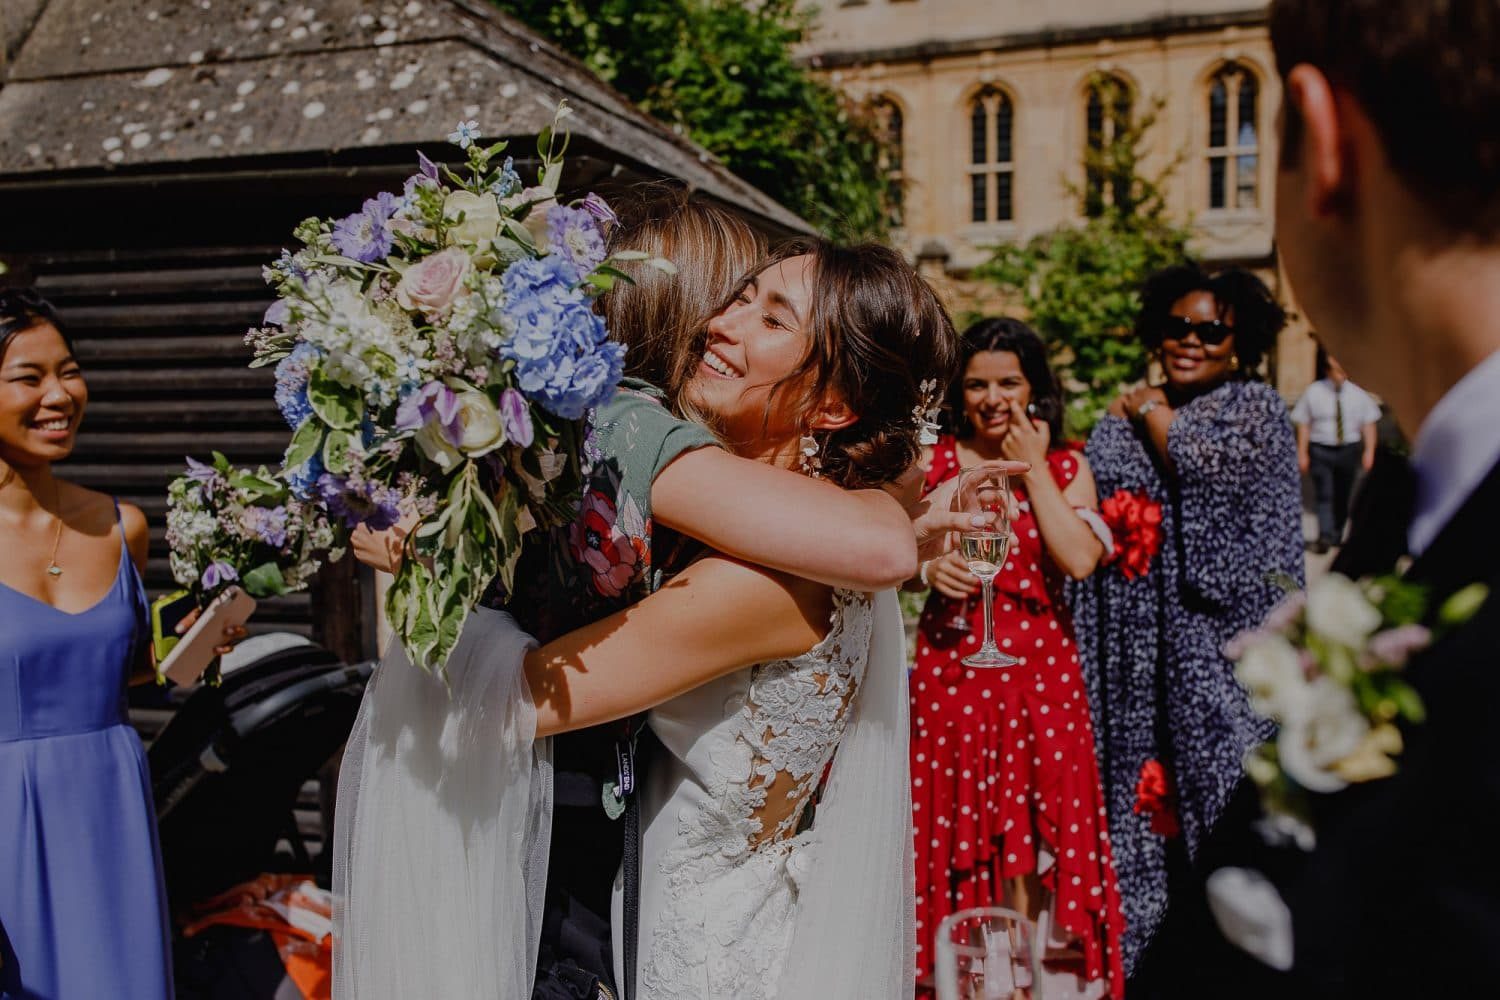 Bride hugs her guests with bouquet in hand.